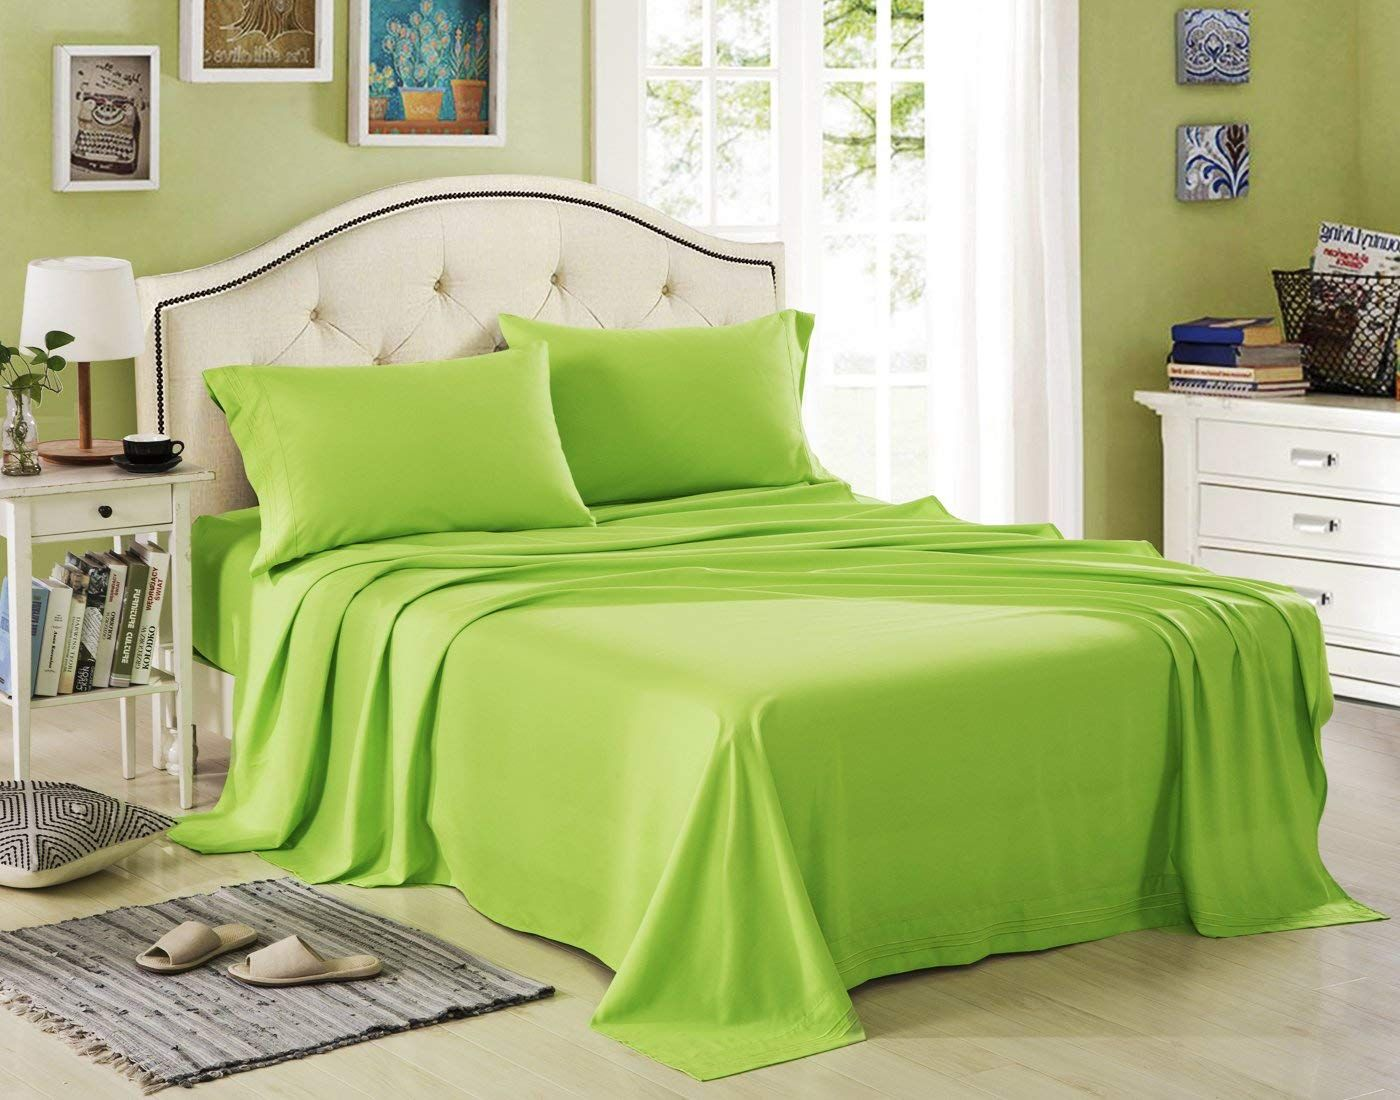 Green Bed Sheet Sets Discounted Sale Green bed sheets